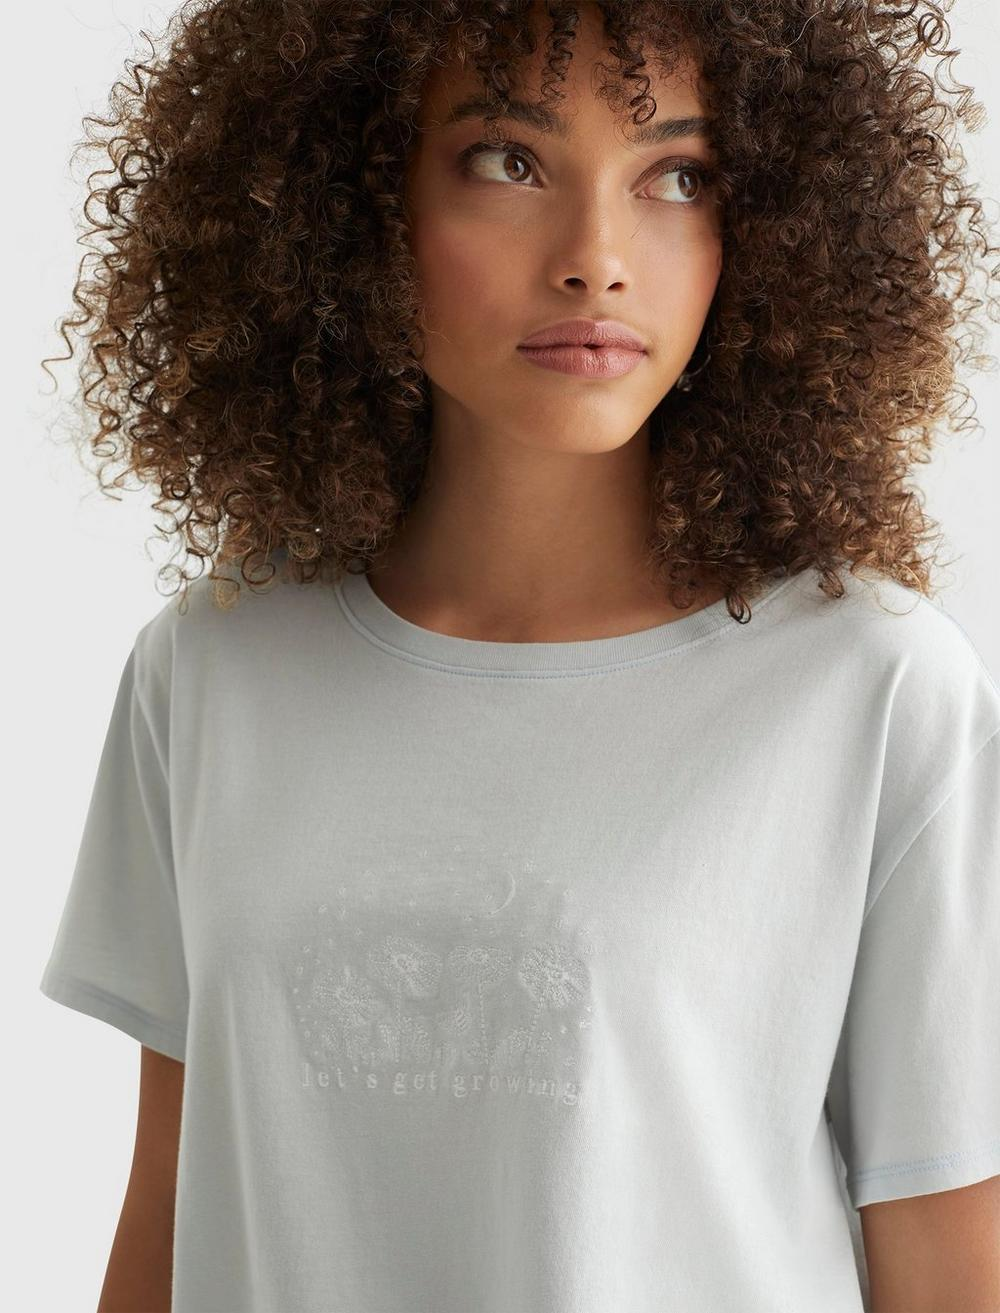 EMBROIDERED MIS FLORAL CROP TEE, image 5